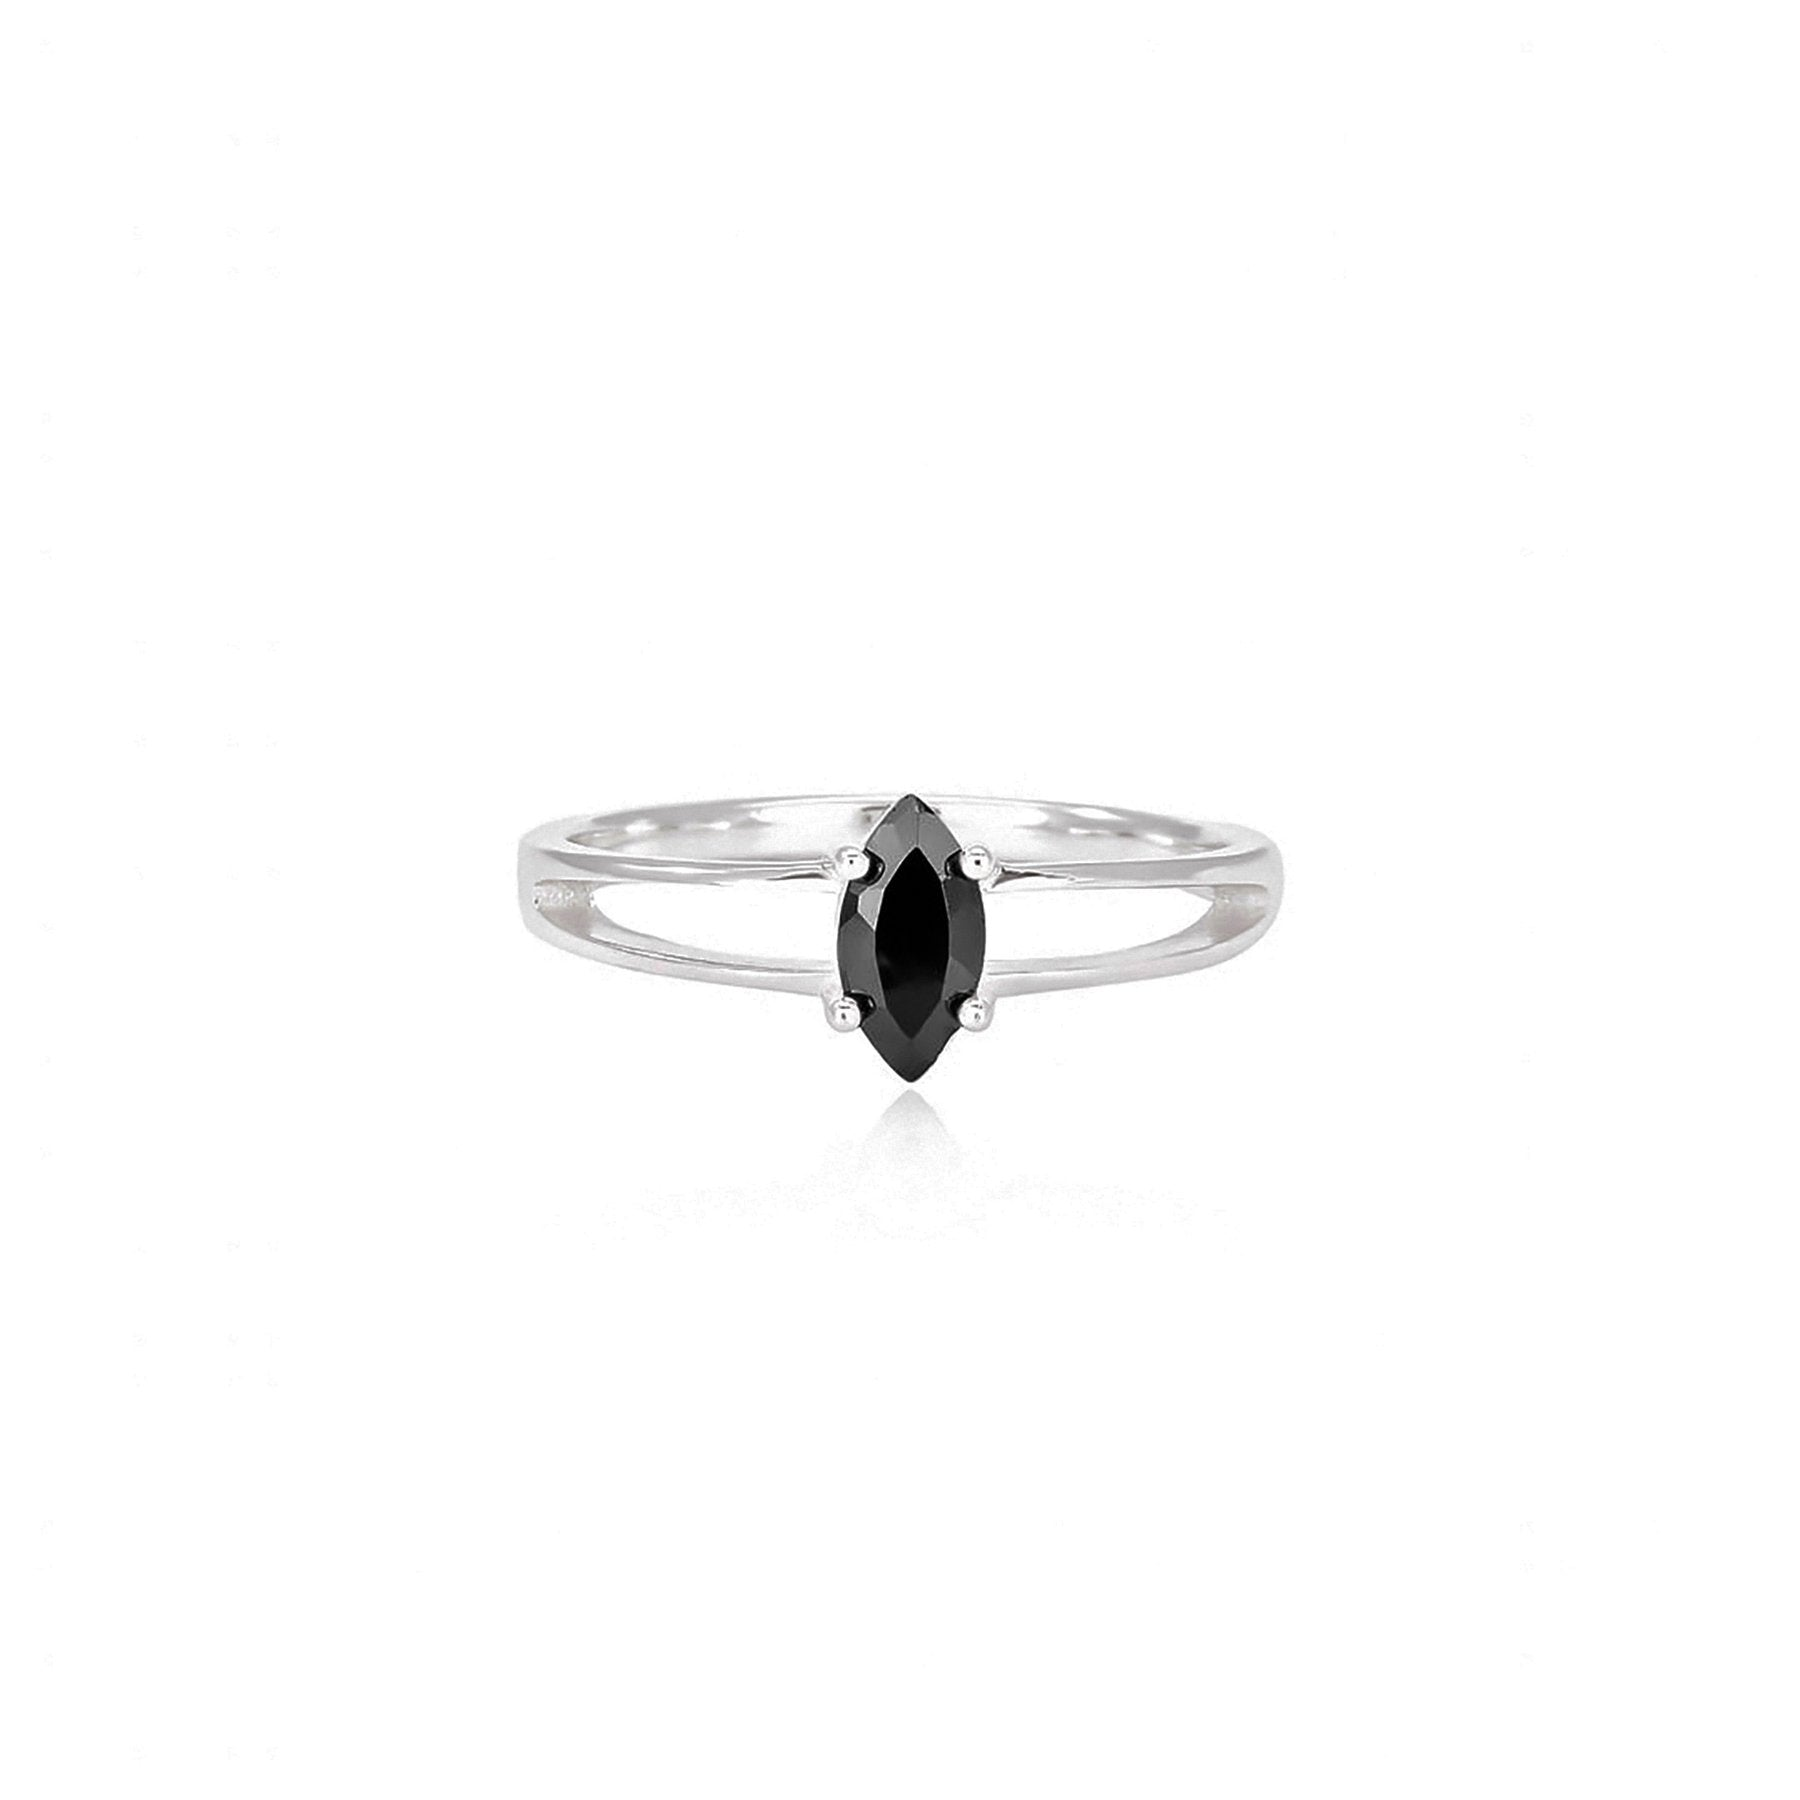 BLACK STONE RING STERLING SILVER 925